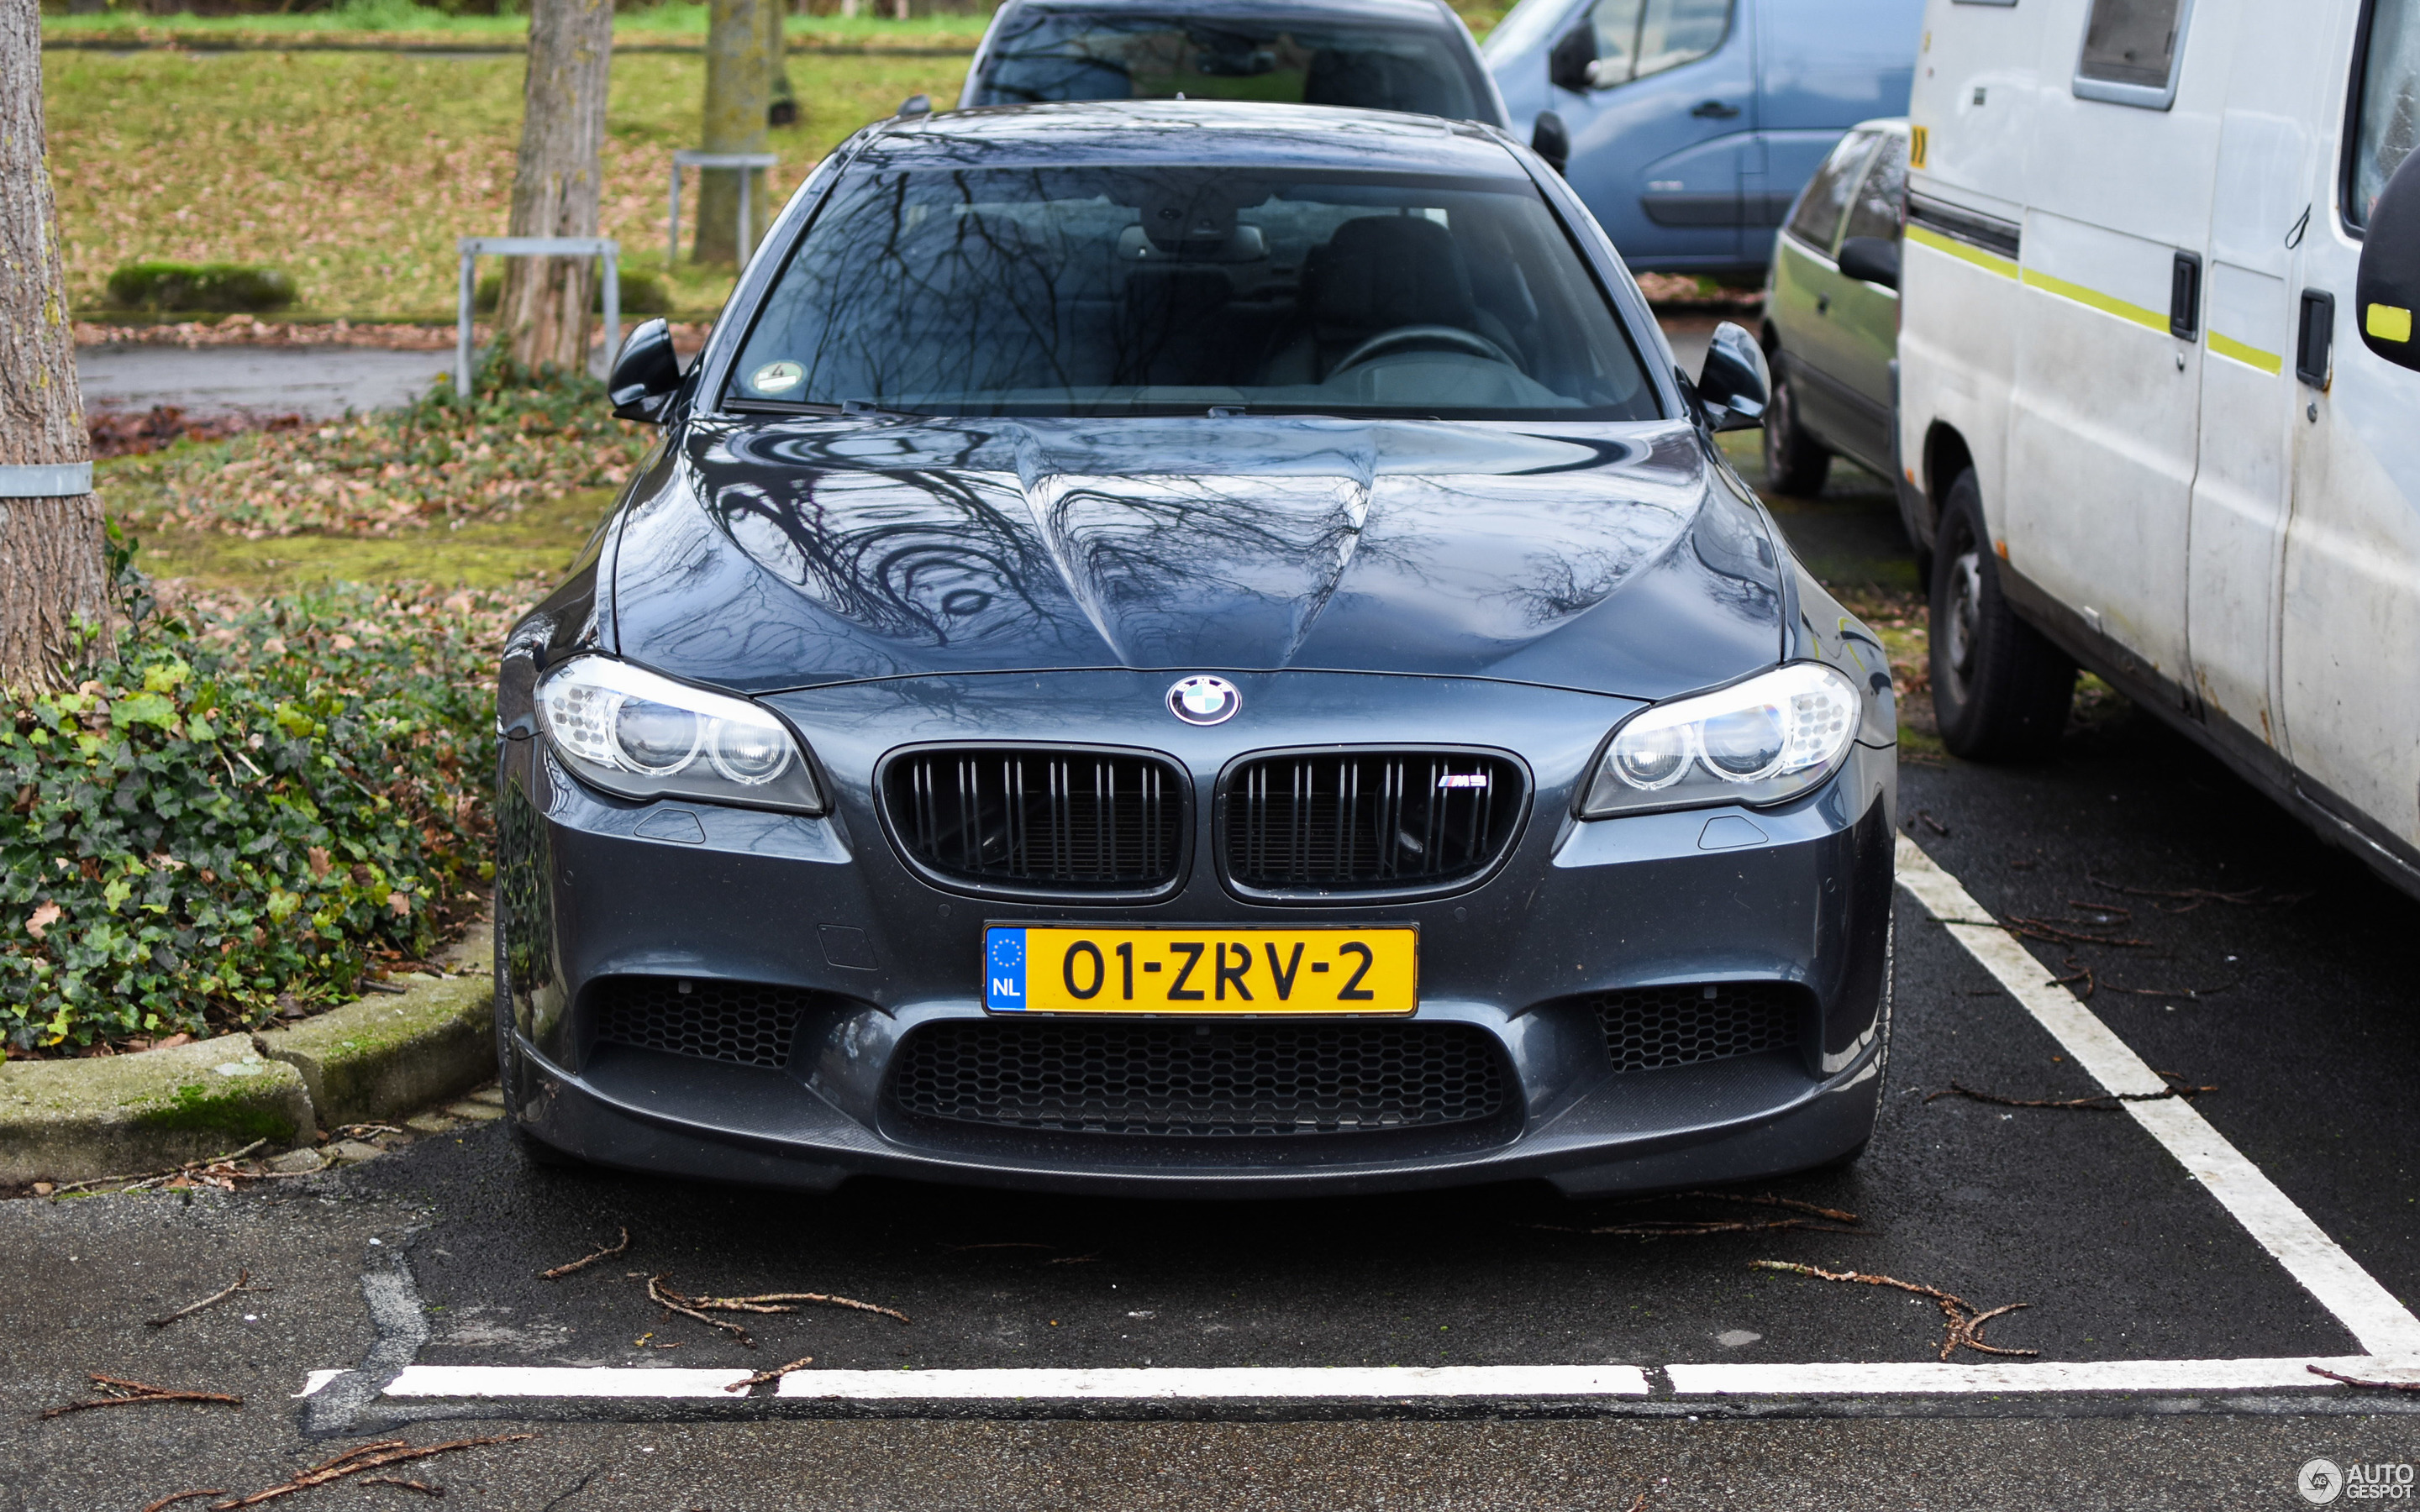 BMW Manhart Performance MH5S Biturbo